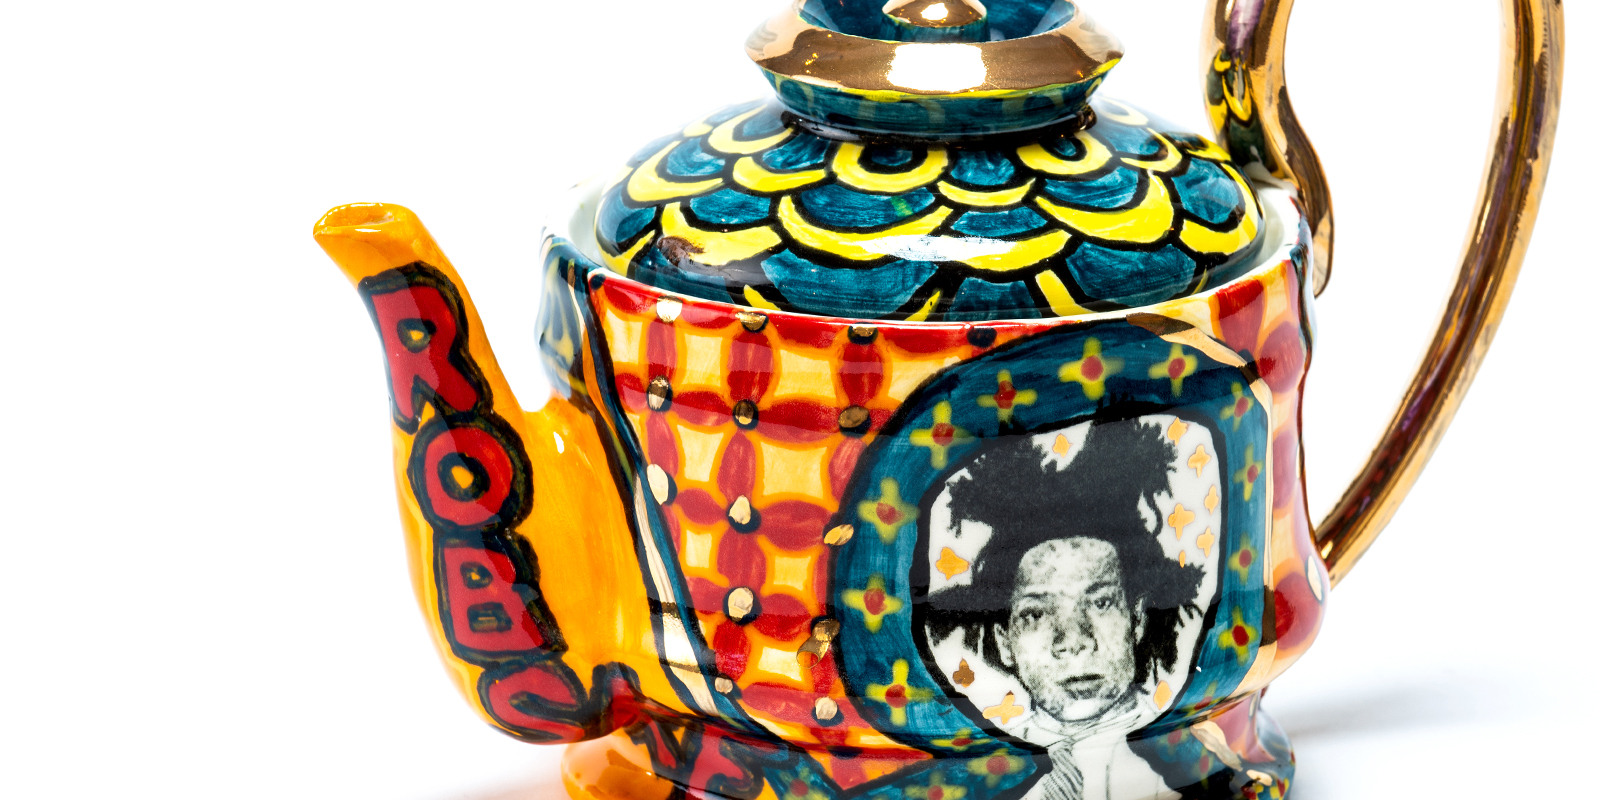 lugo teapot Homepage sept - Home - Wexler Gallery